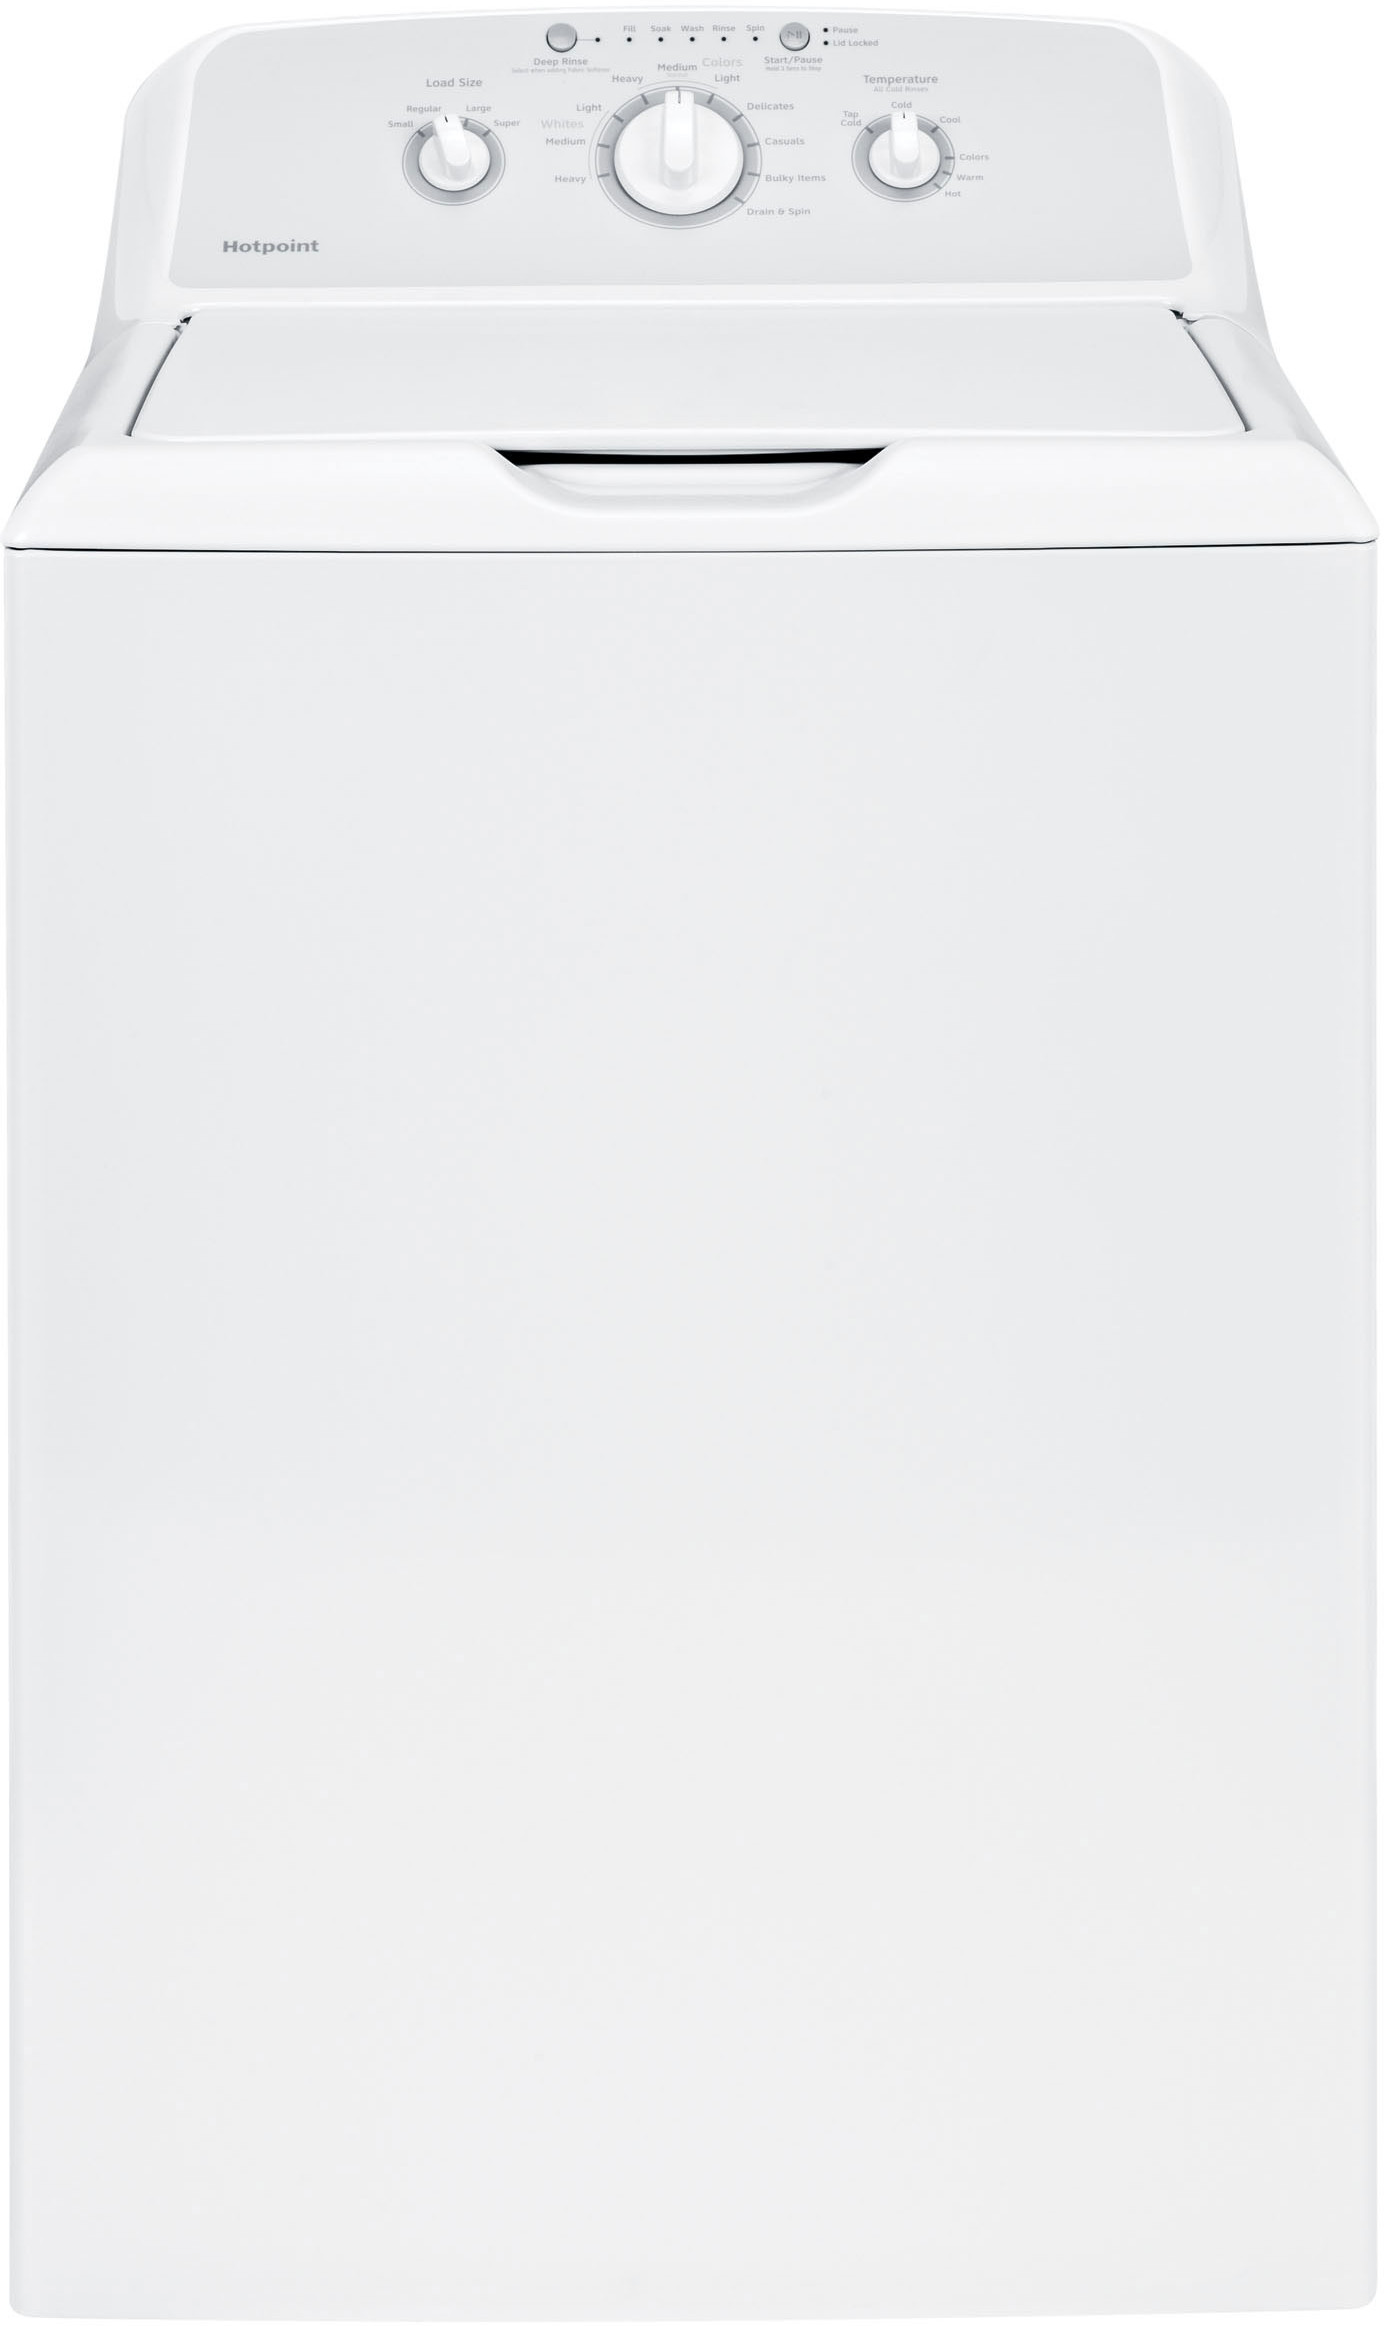 Ge Htw240askws 27 Inch Top Load Washer With 3 6 Cu Ft